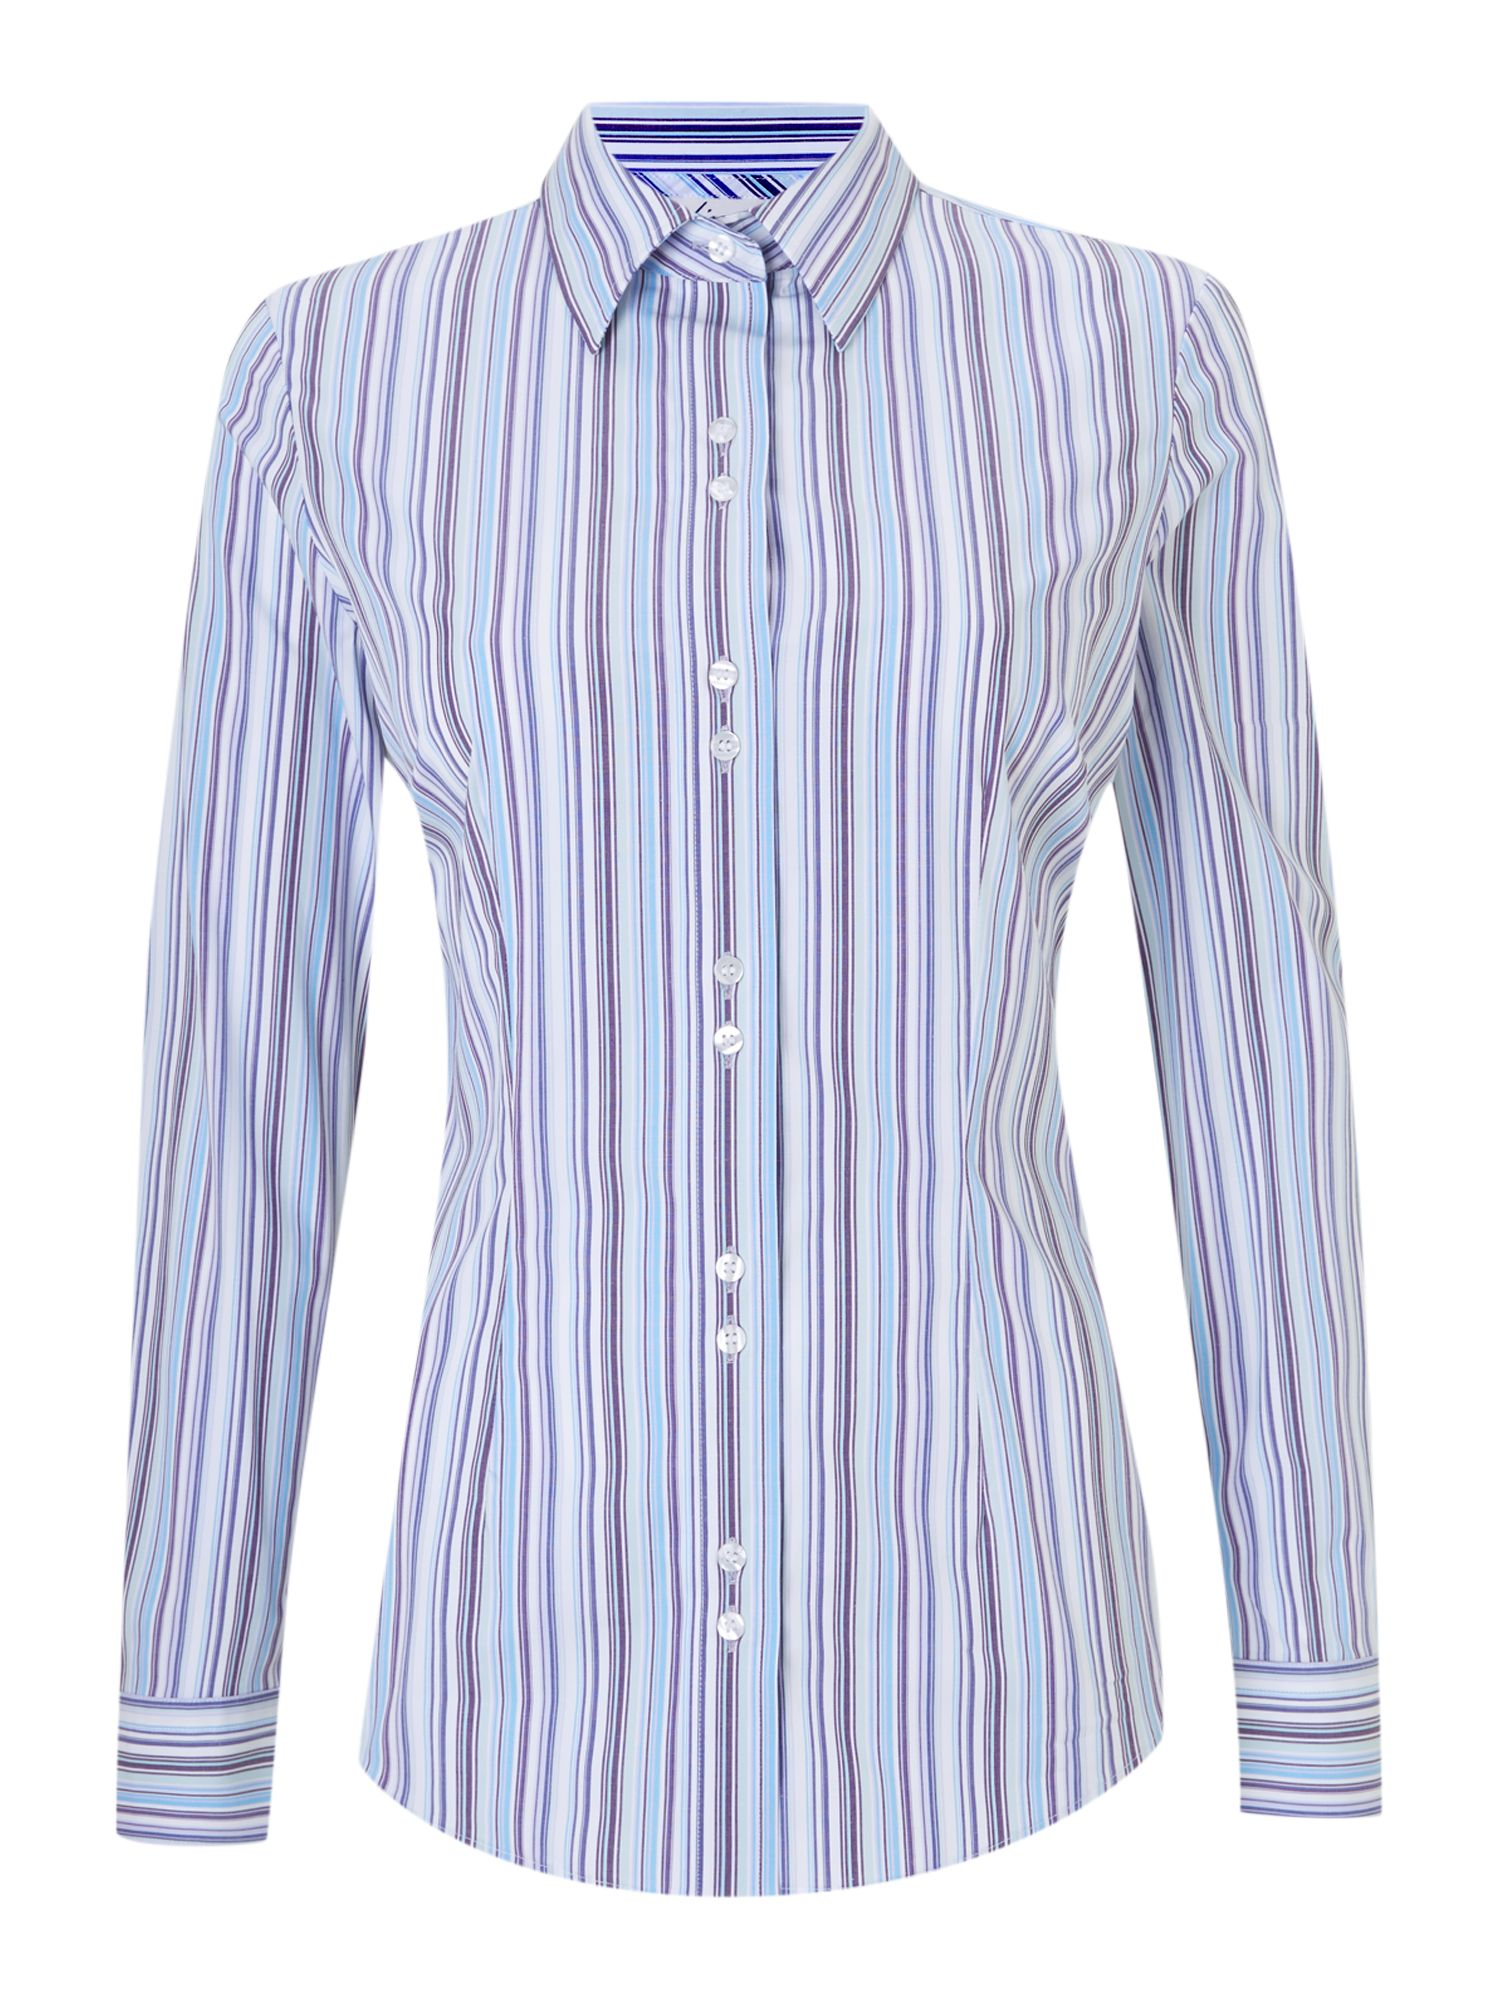 Hawes & Curtis multi blues stretch shirt